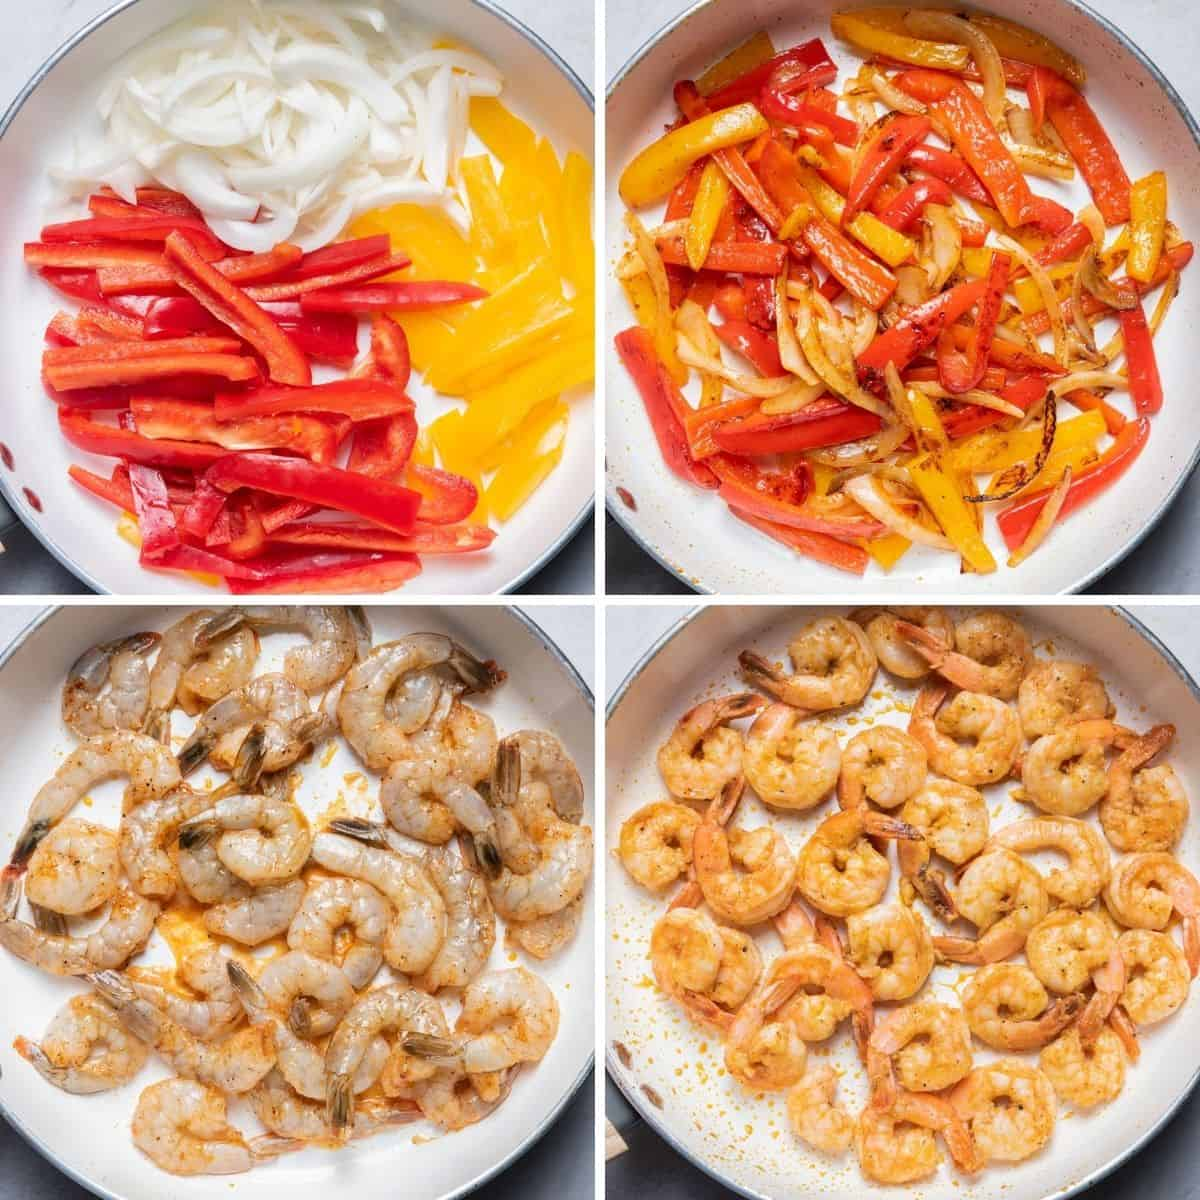 4 image collage to show cooking the peppers before and after they soften, and then cooking the shrimp before and after